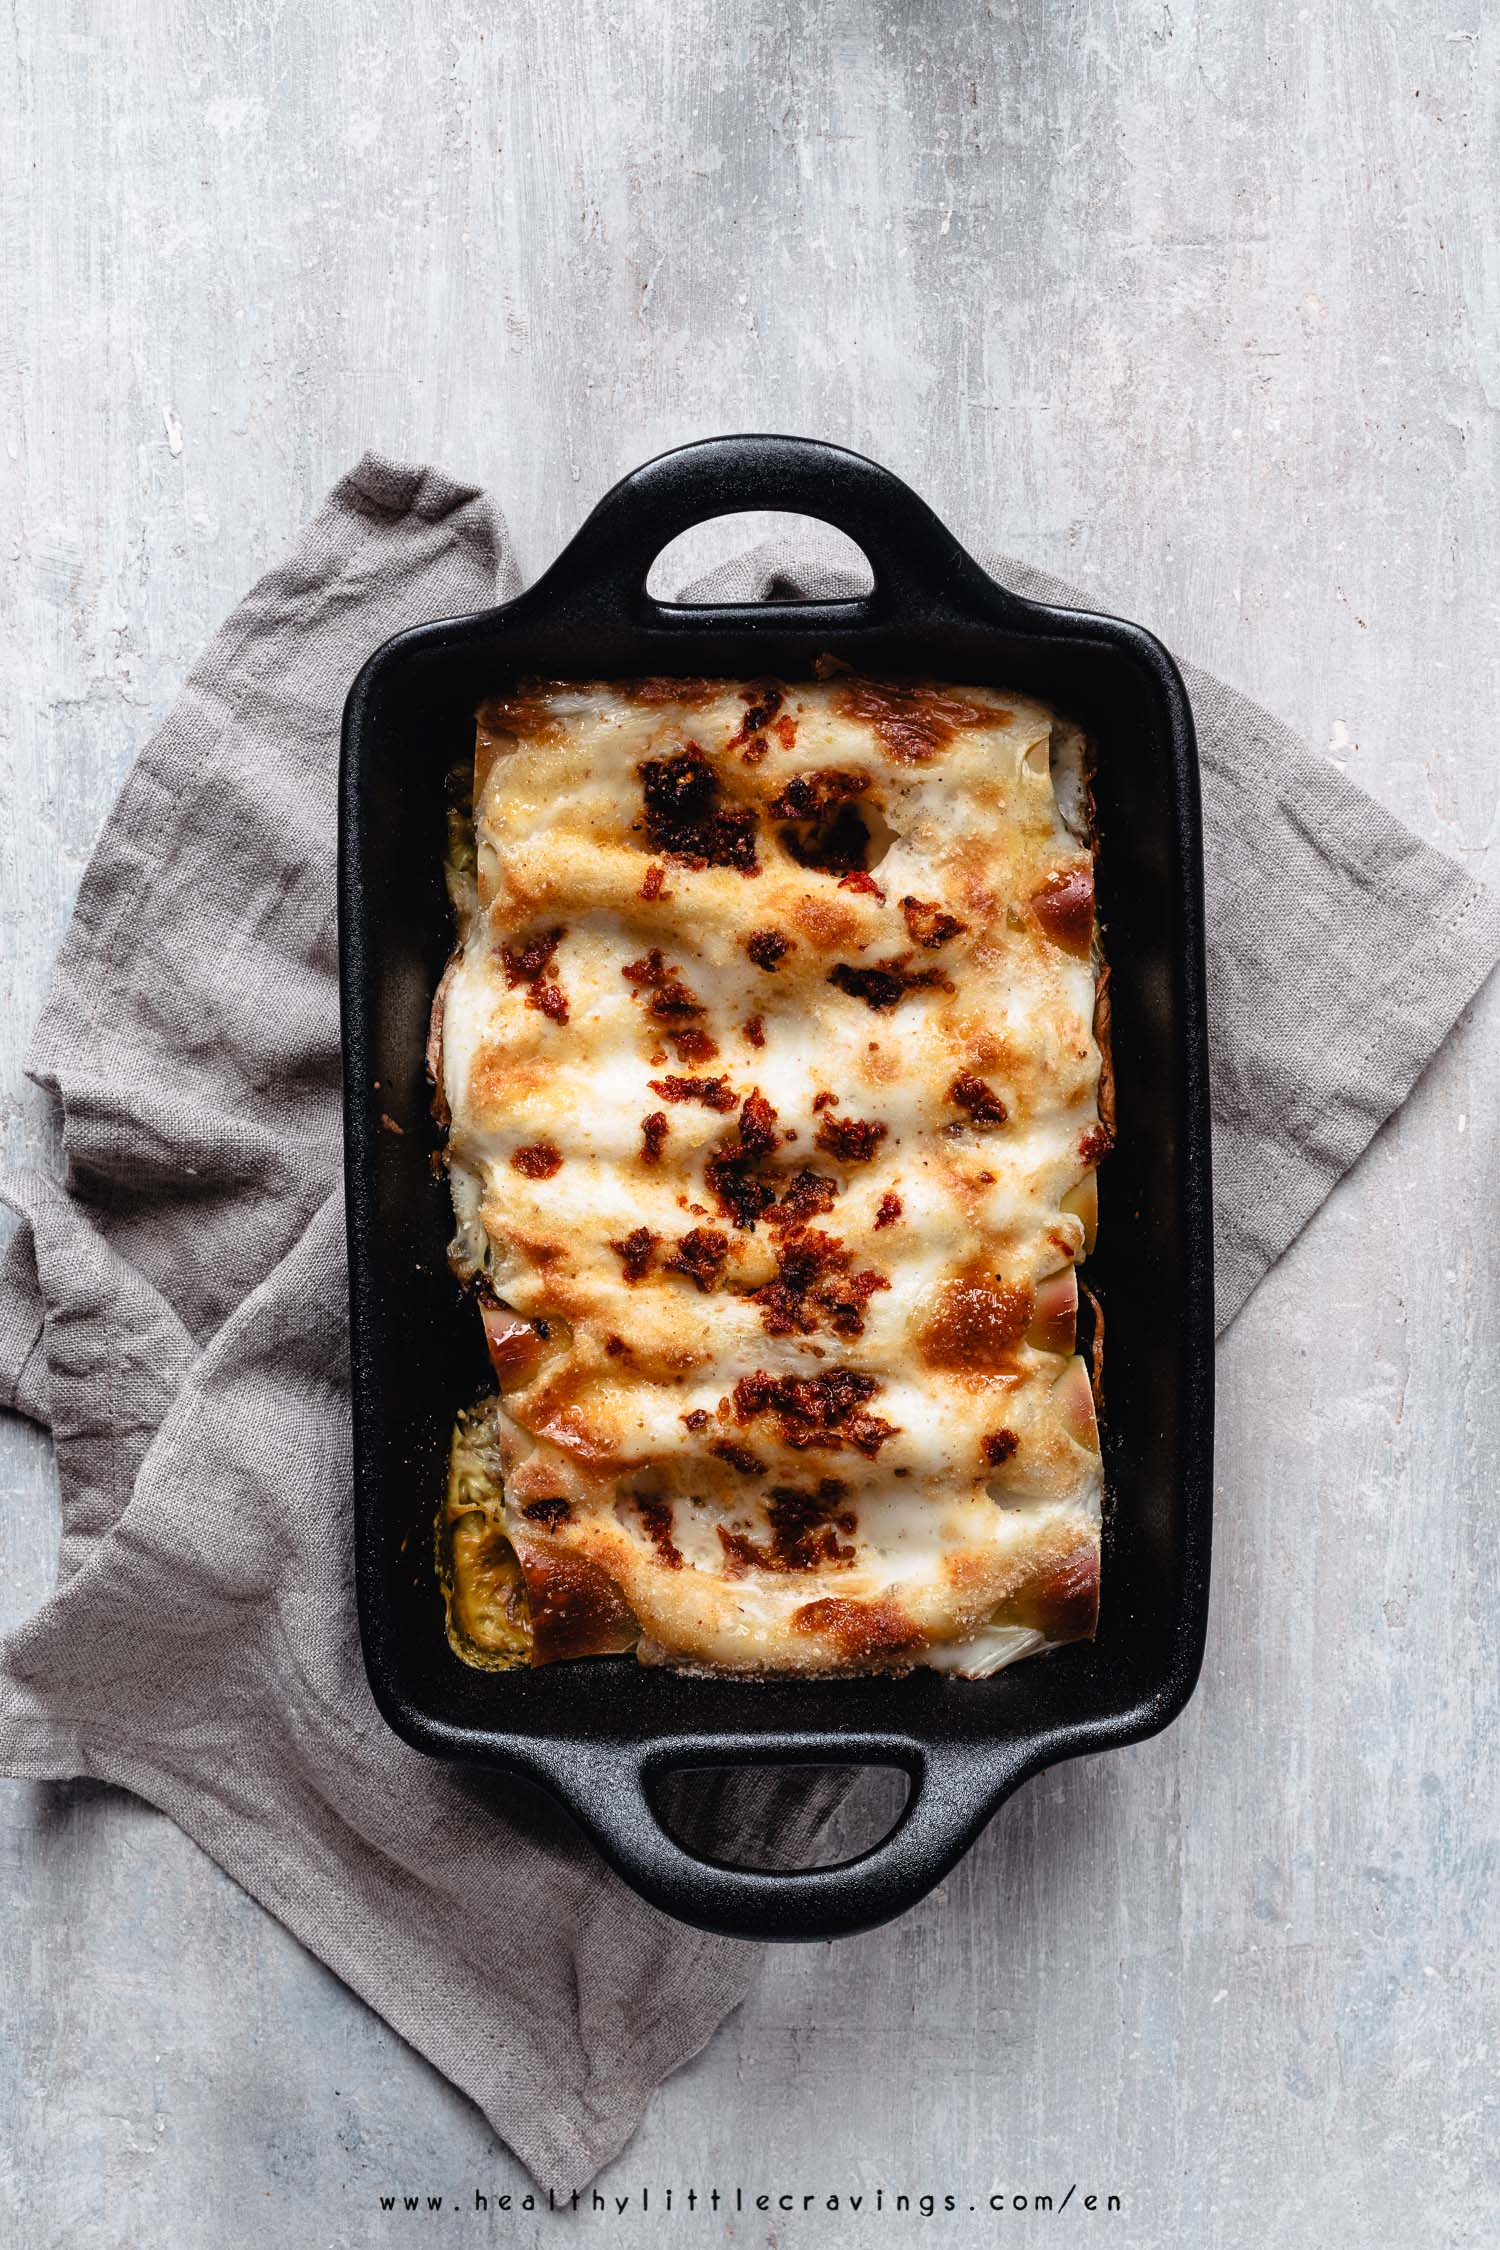 My creamy mushroom cannelloni recipe will surprise you!